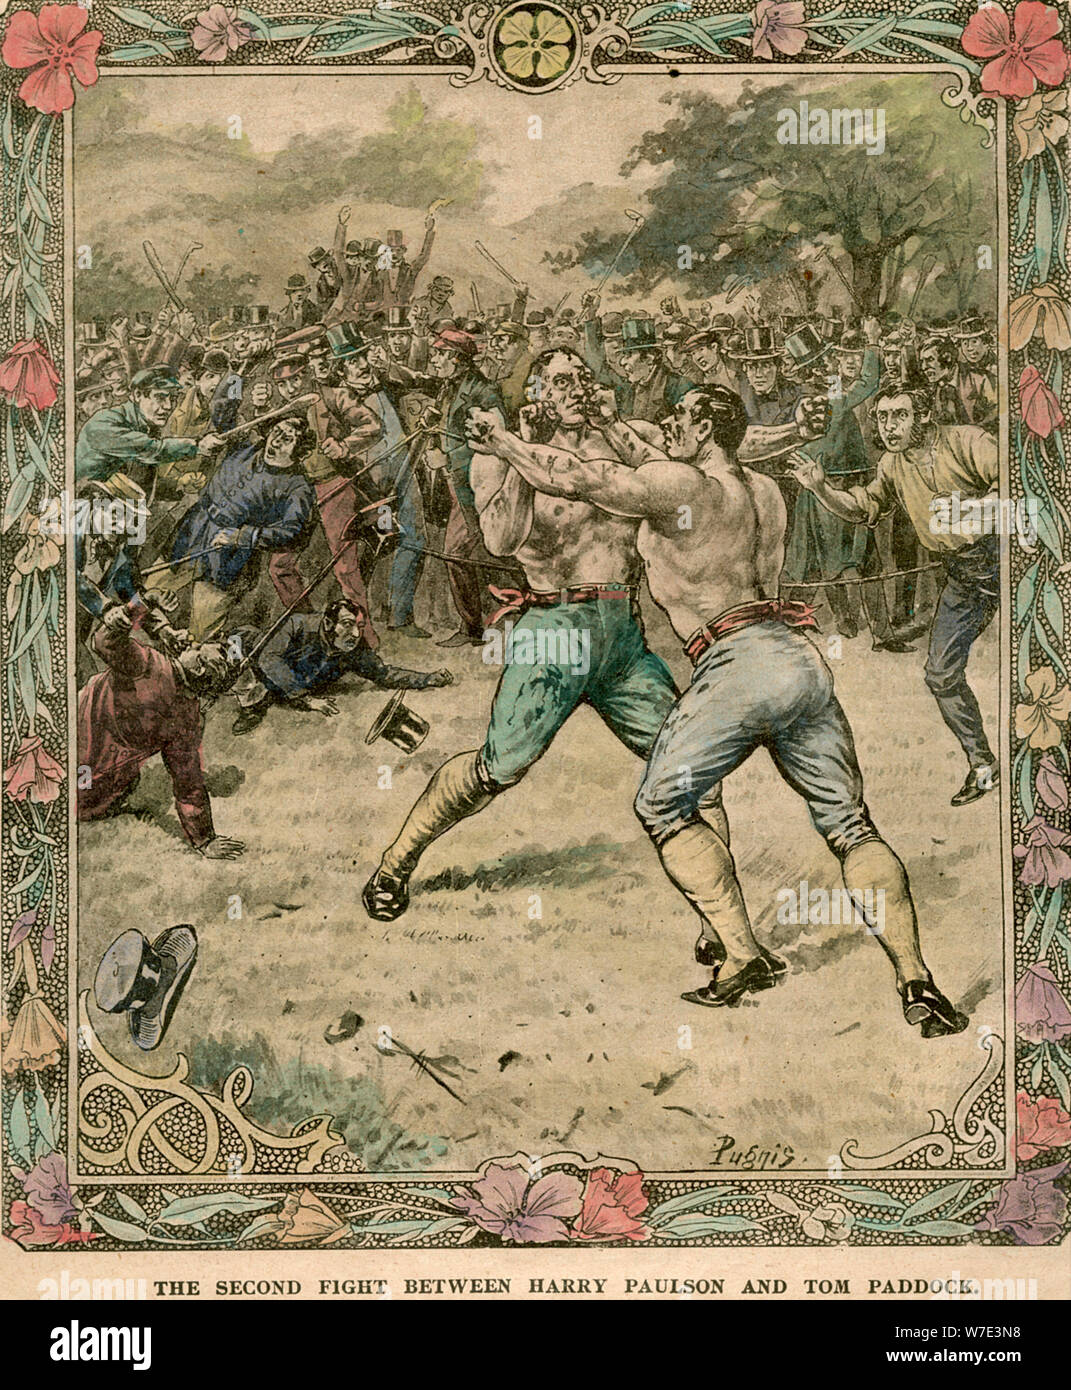 'The second fight between Harry Paulson and Tom Paddock', 1851 (late 19th or early 20th century).Artist: Pugnis Stock Photo